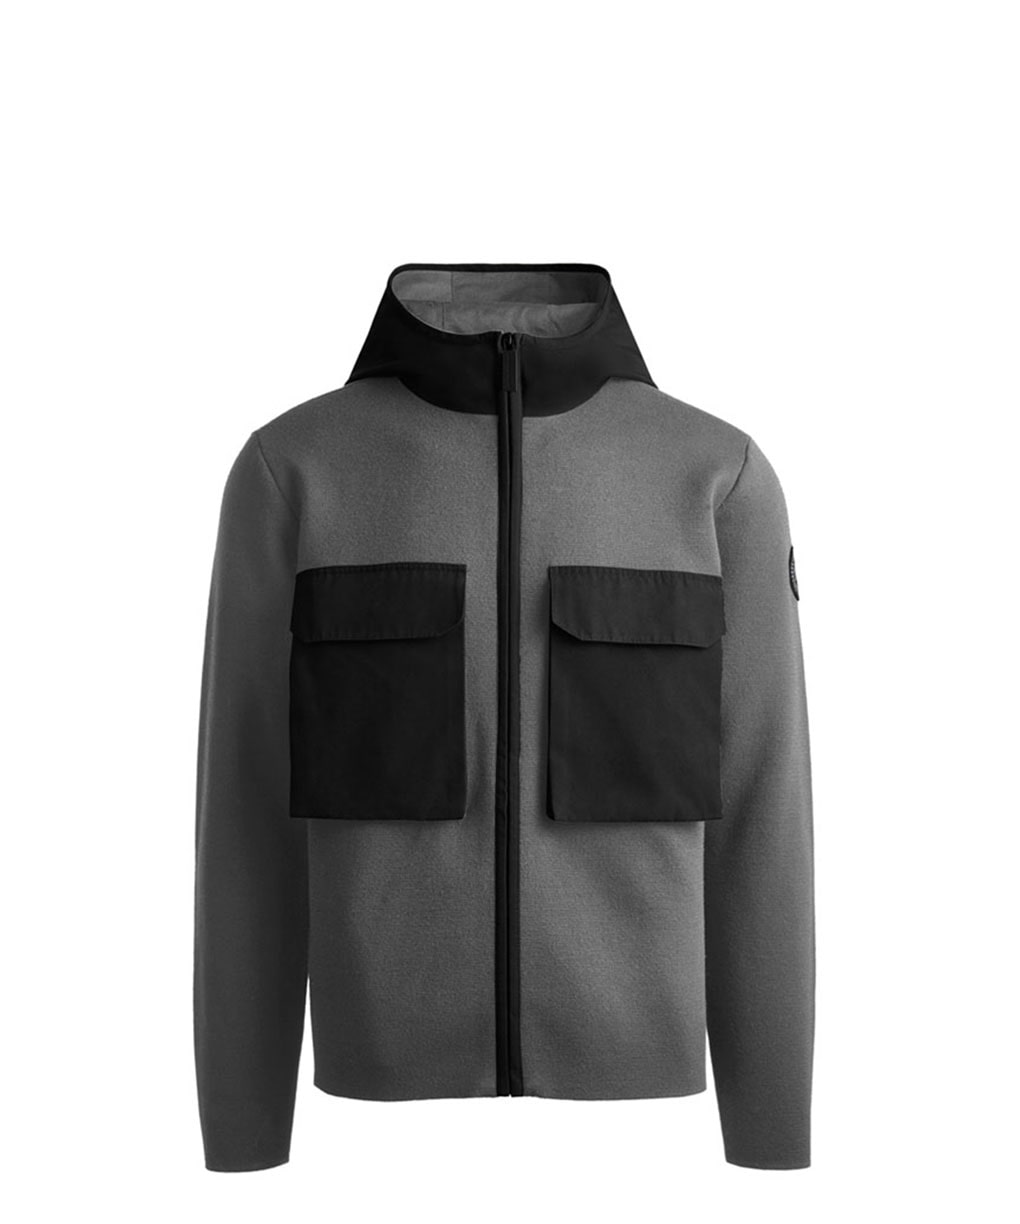 ELGIN FULL ZIP SWEATER